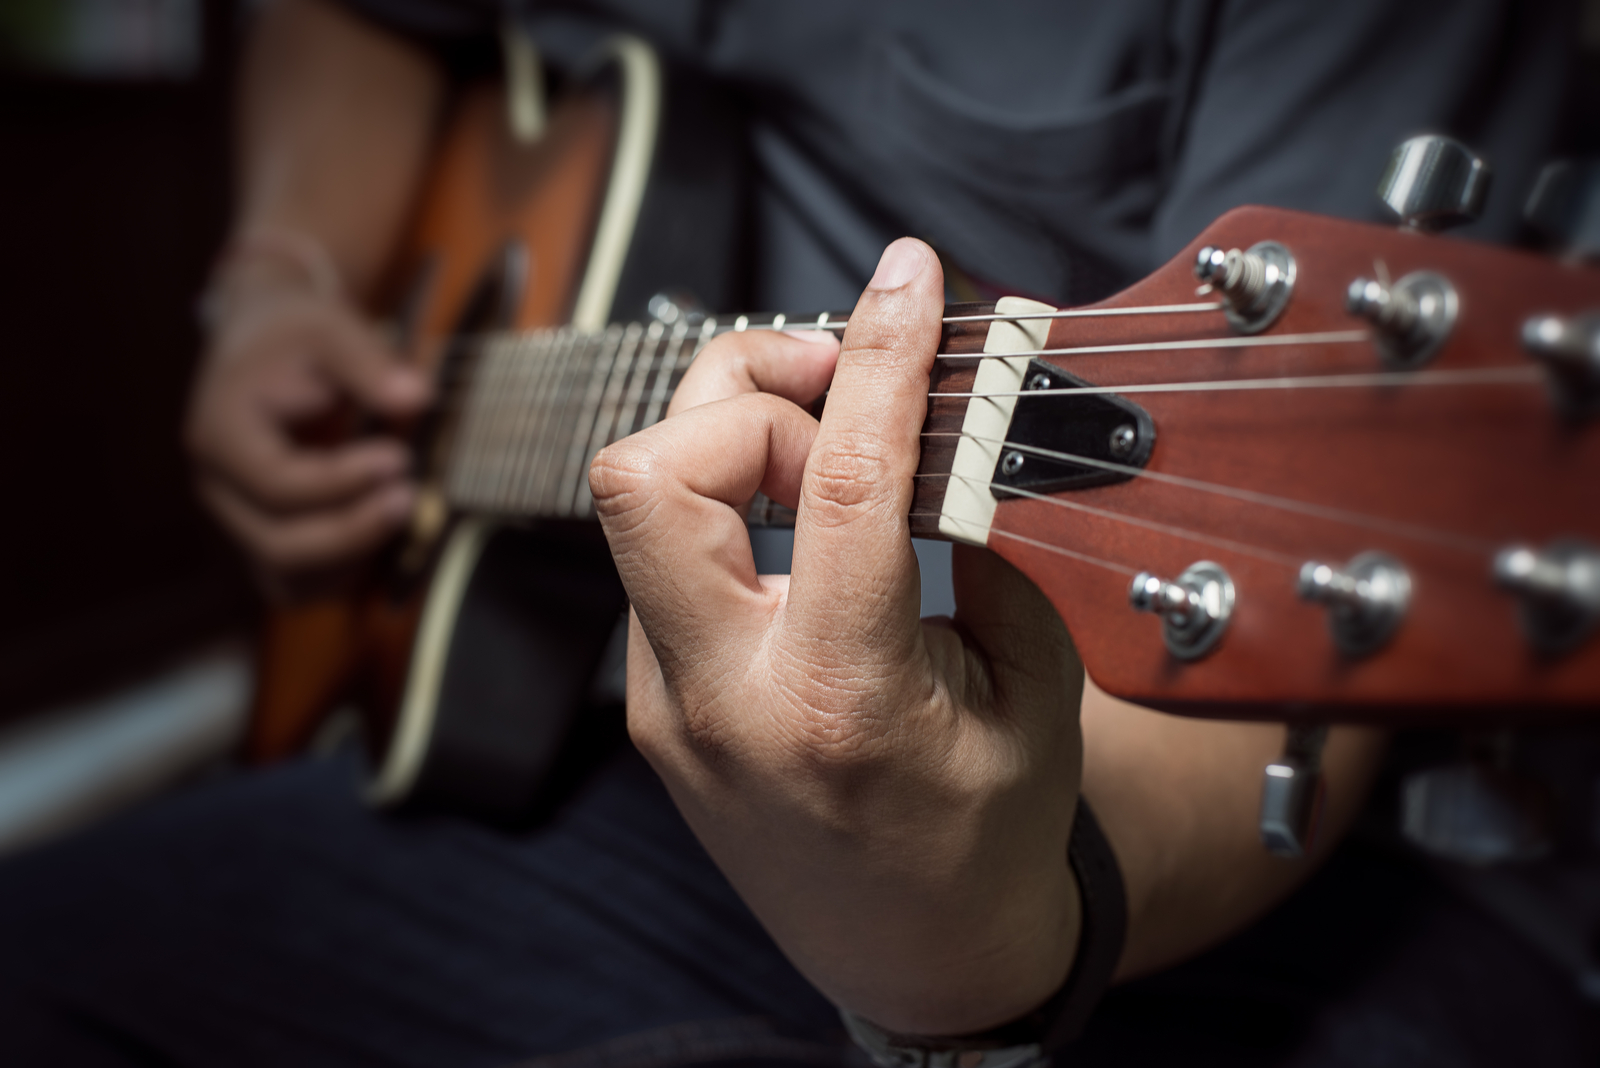 Guitar Chords For Beginners | Mastering The X Most Important Guitar Chords For Beginners